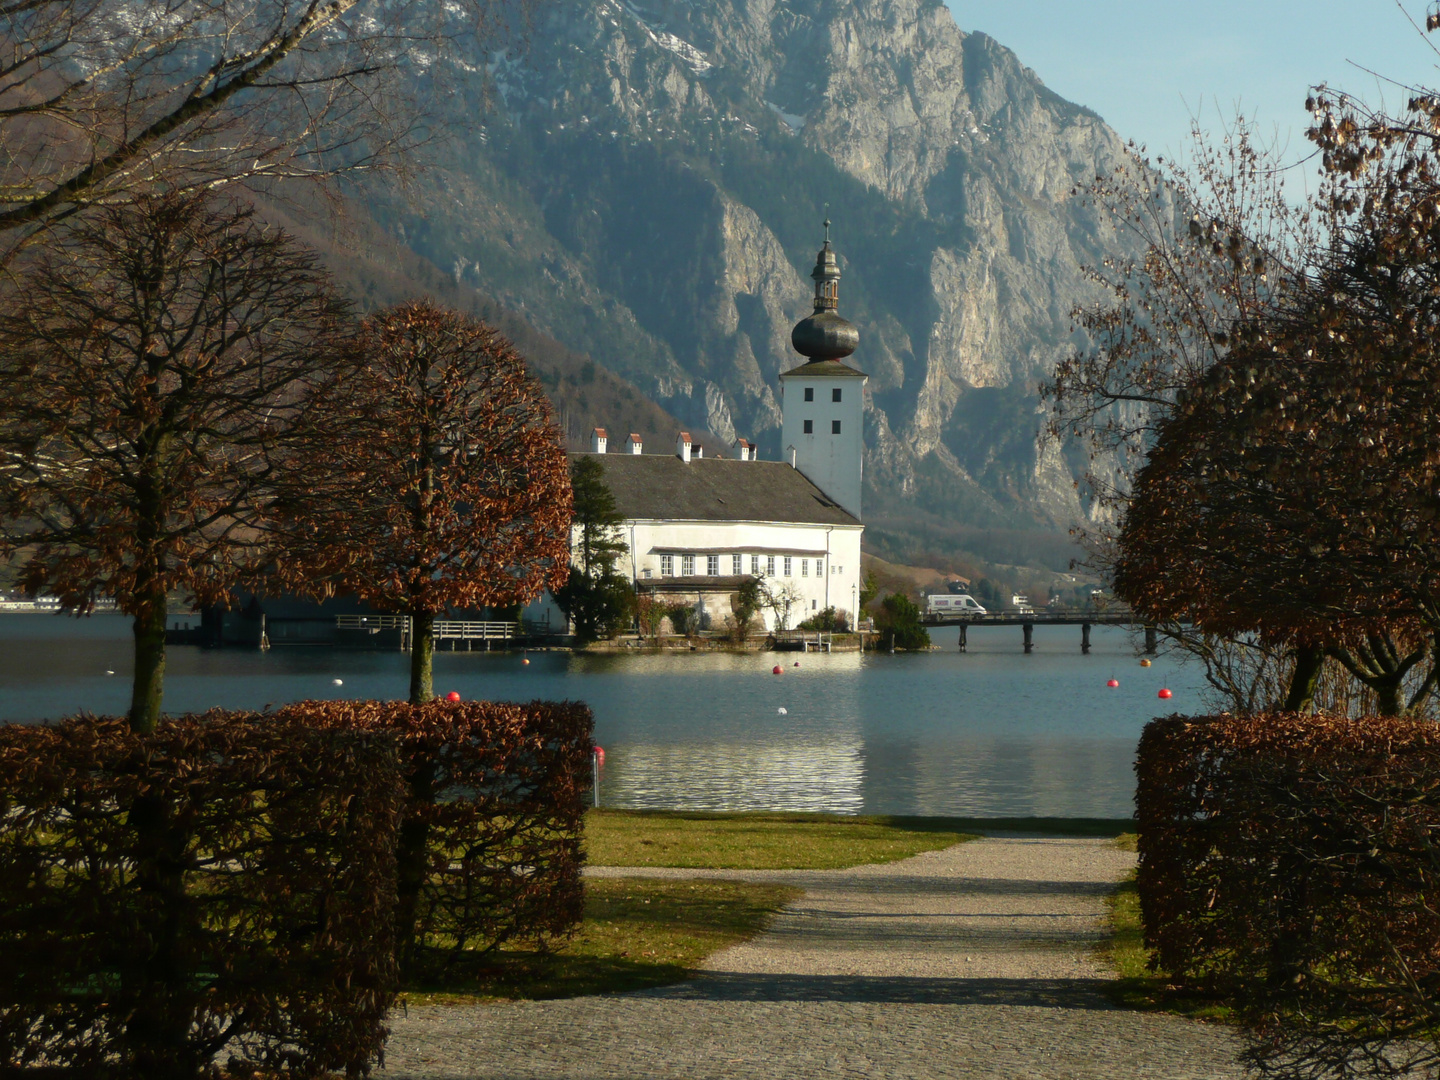 Traunsee / Schloss Orth